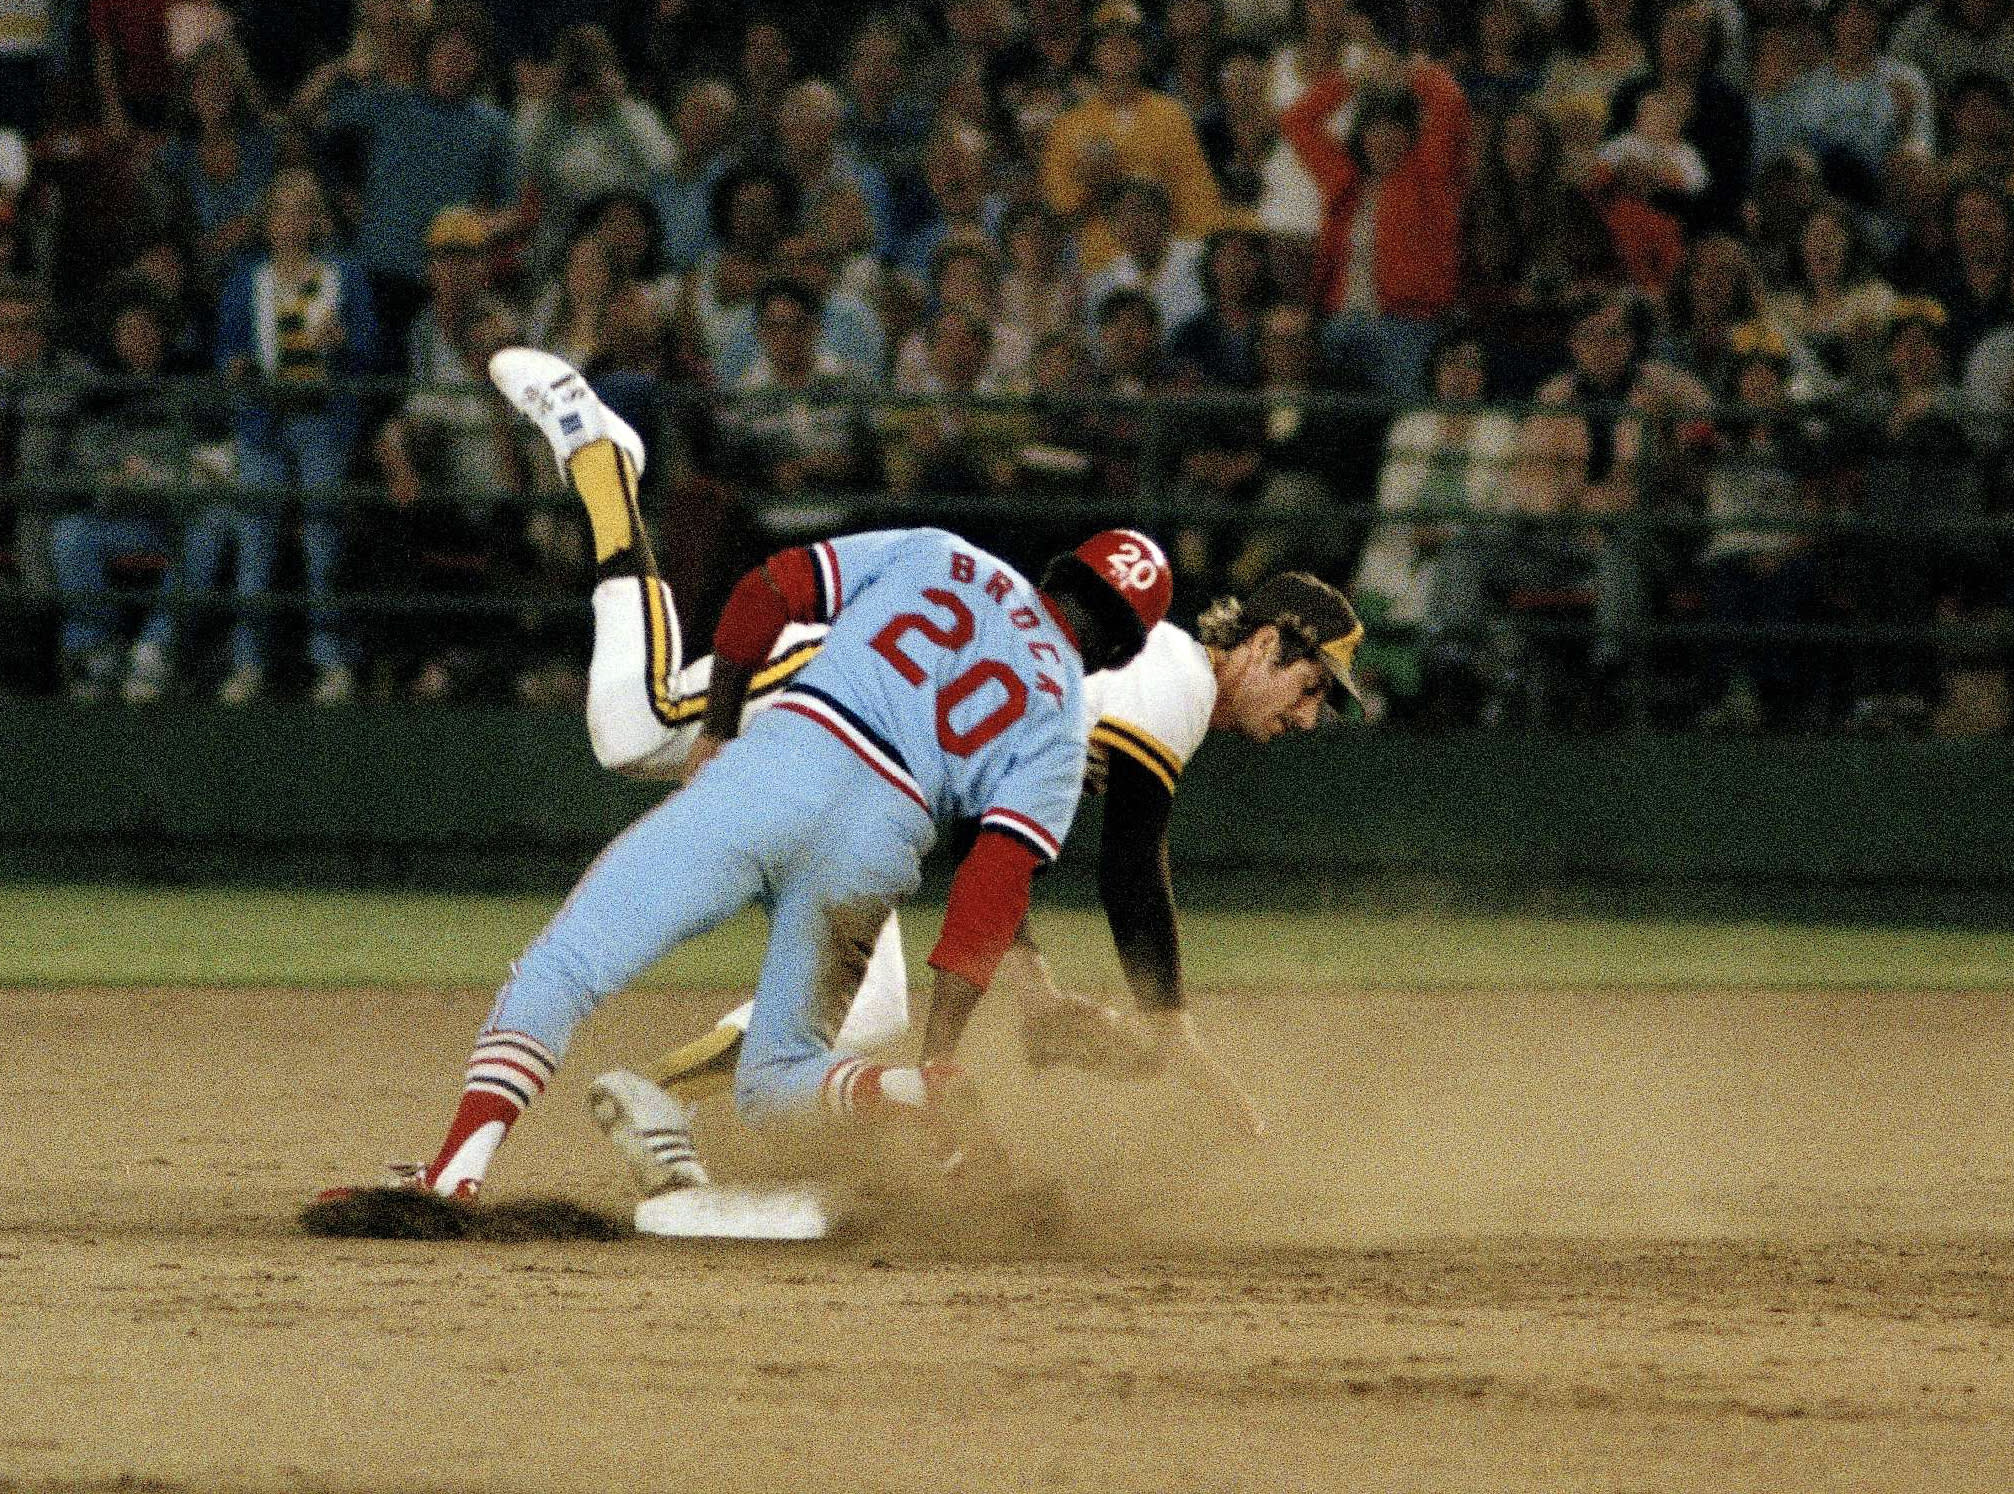 FILE - In this Aug. 30, 1977, file photo, St. Louis Cardinals' Lou Brock (20) lands on his feet after stealing second base in the seventh inning against the San Diego Padres, breaking Ty Cobb's major league record of 892 stolen bases, in San Diego, Calif. Padres shortstop Bill Almon falls after missing the throw. Hall of Famer Brock, one of baseball's signature leadoff hitters and base stealers who helped the Cardinals win three pennants and two World Series titles in the 1960s, has died. He was 81. (AP Photo, File)